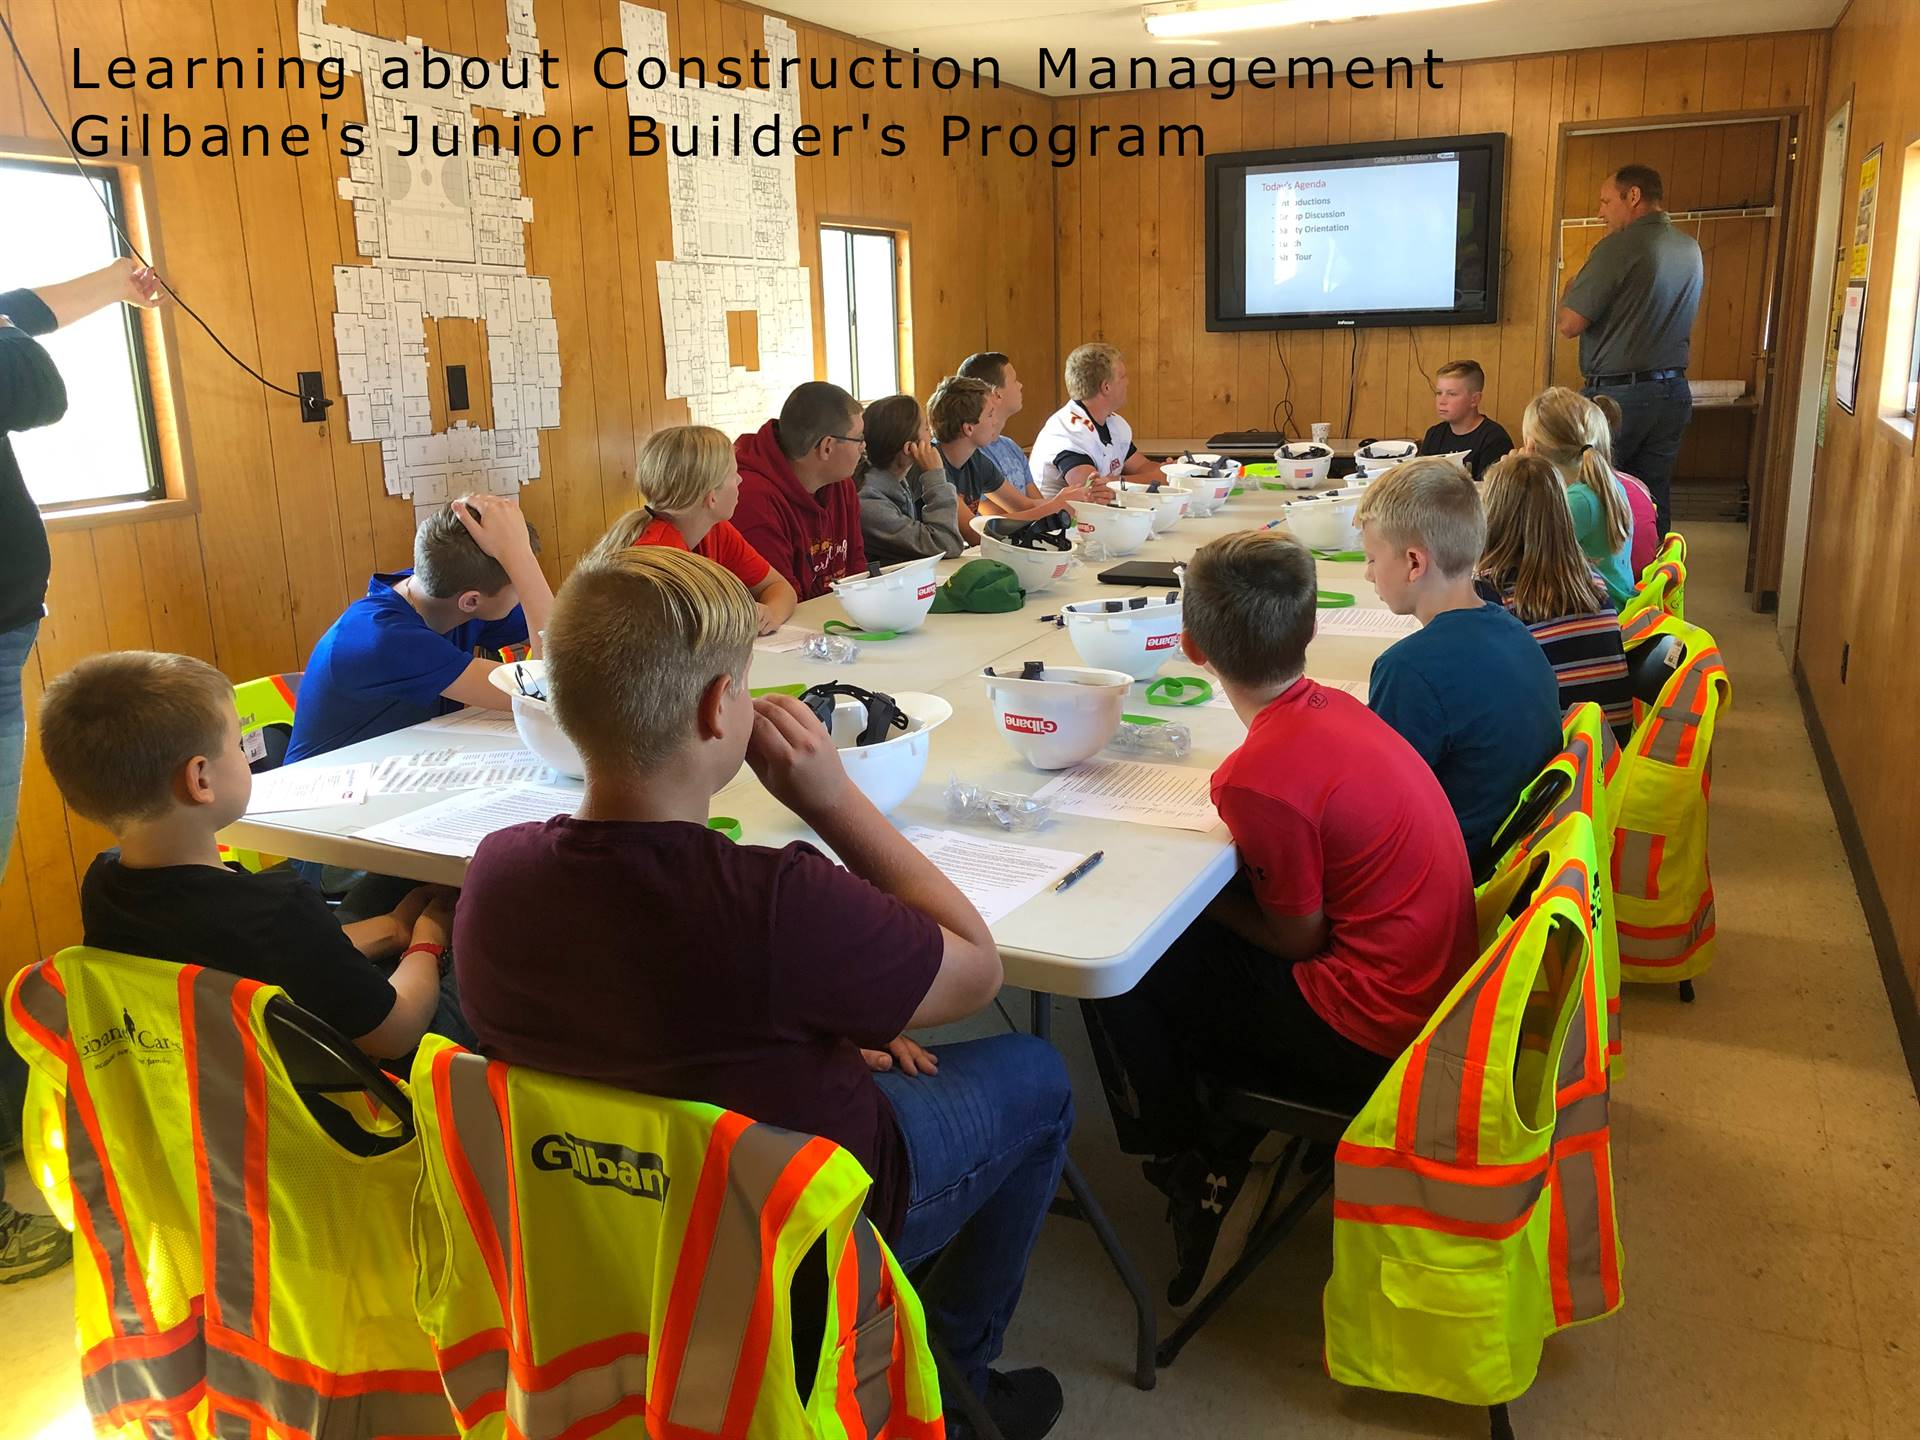 Gilbane's Junior Builder's Program - Students learning about Construction Management